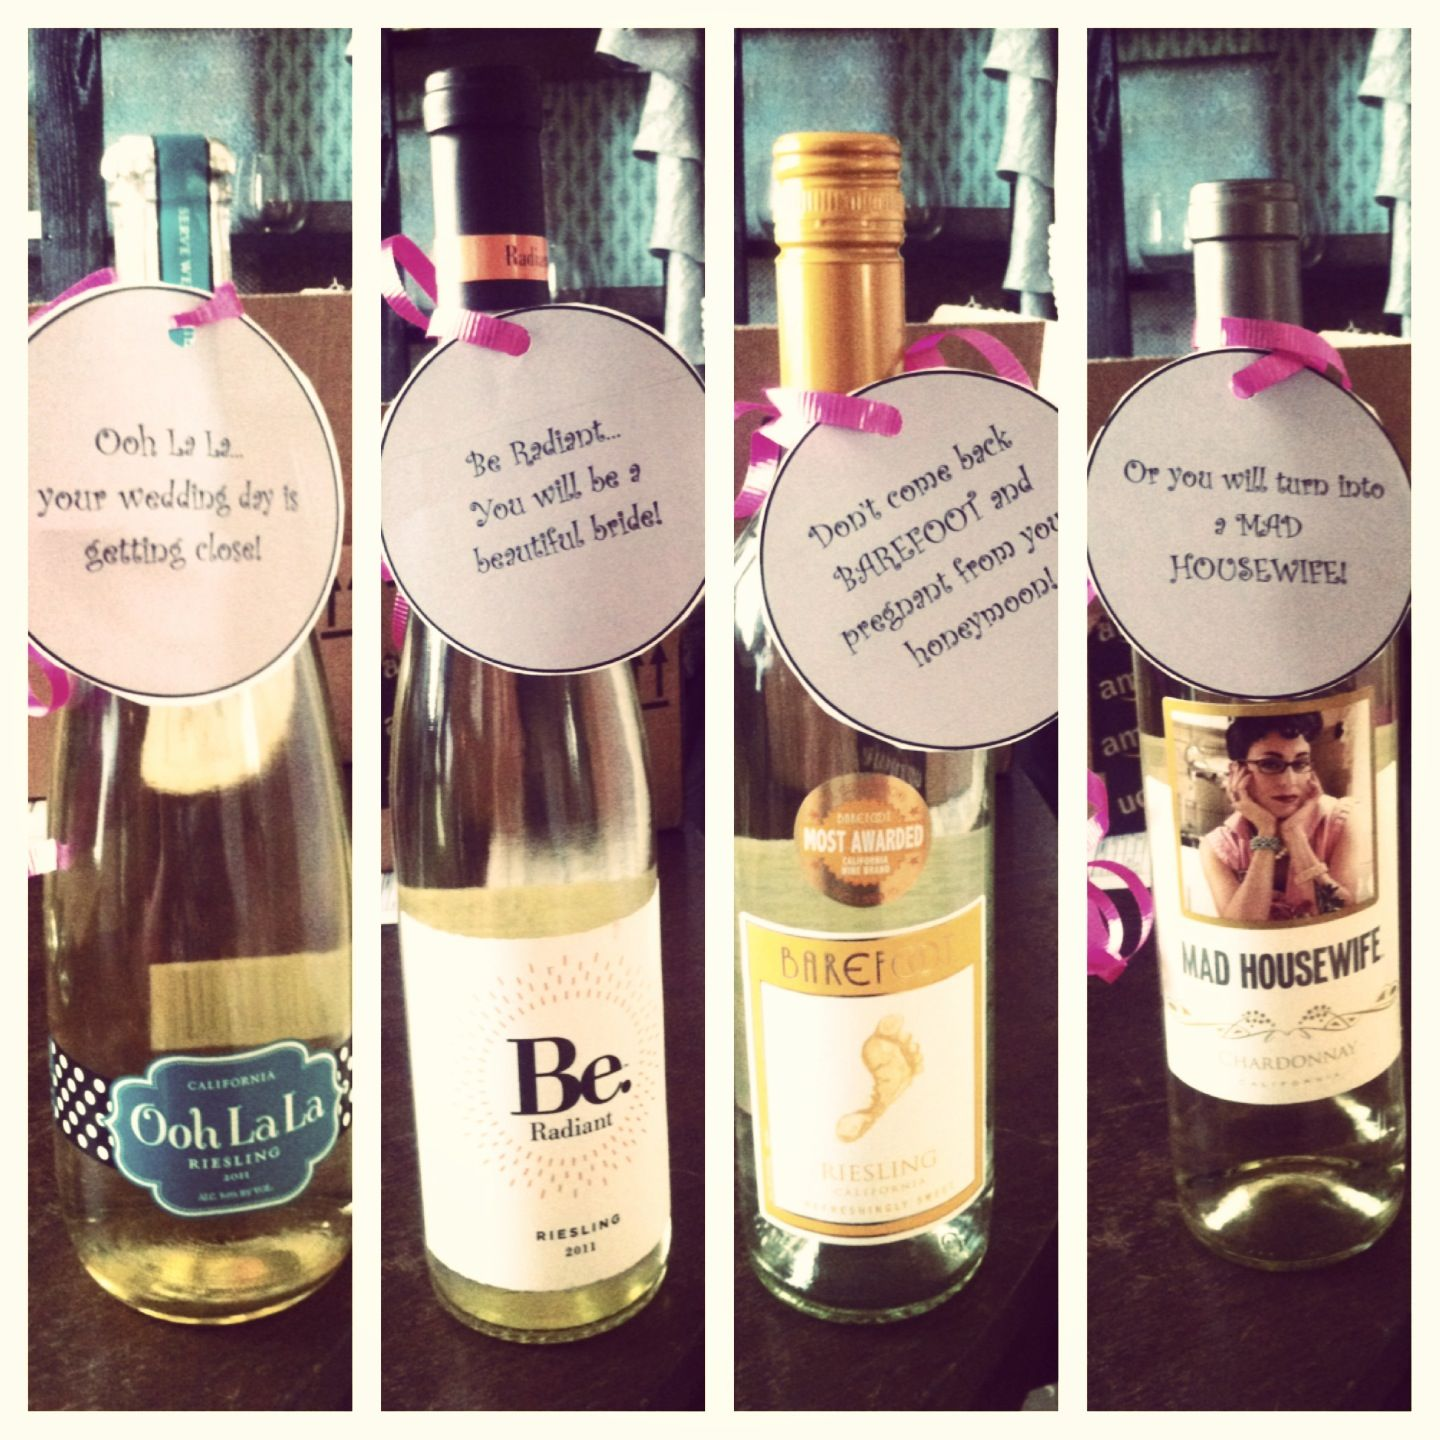 Wedding Gift For Acquaintance: Awesome Gift For The Bride The Week Of The Wedding